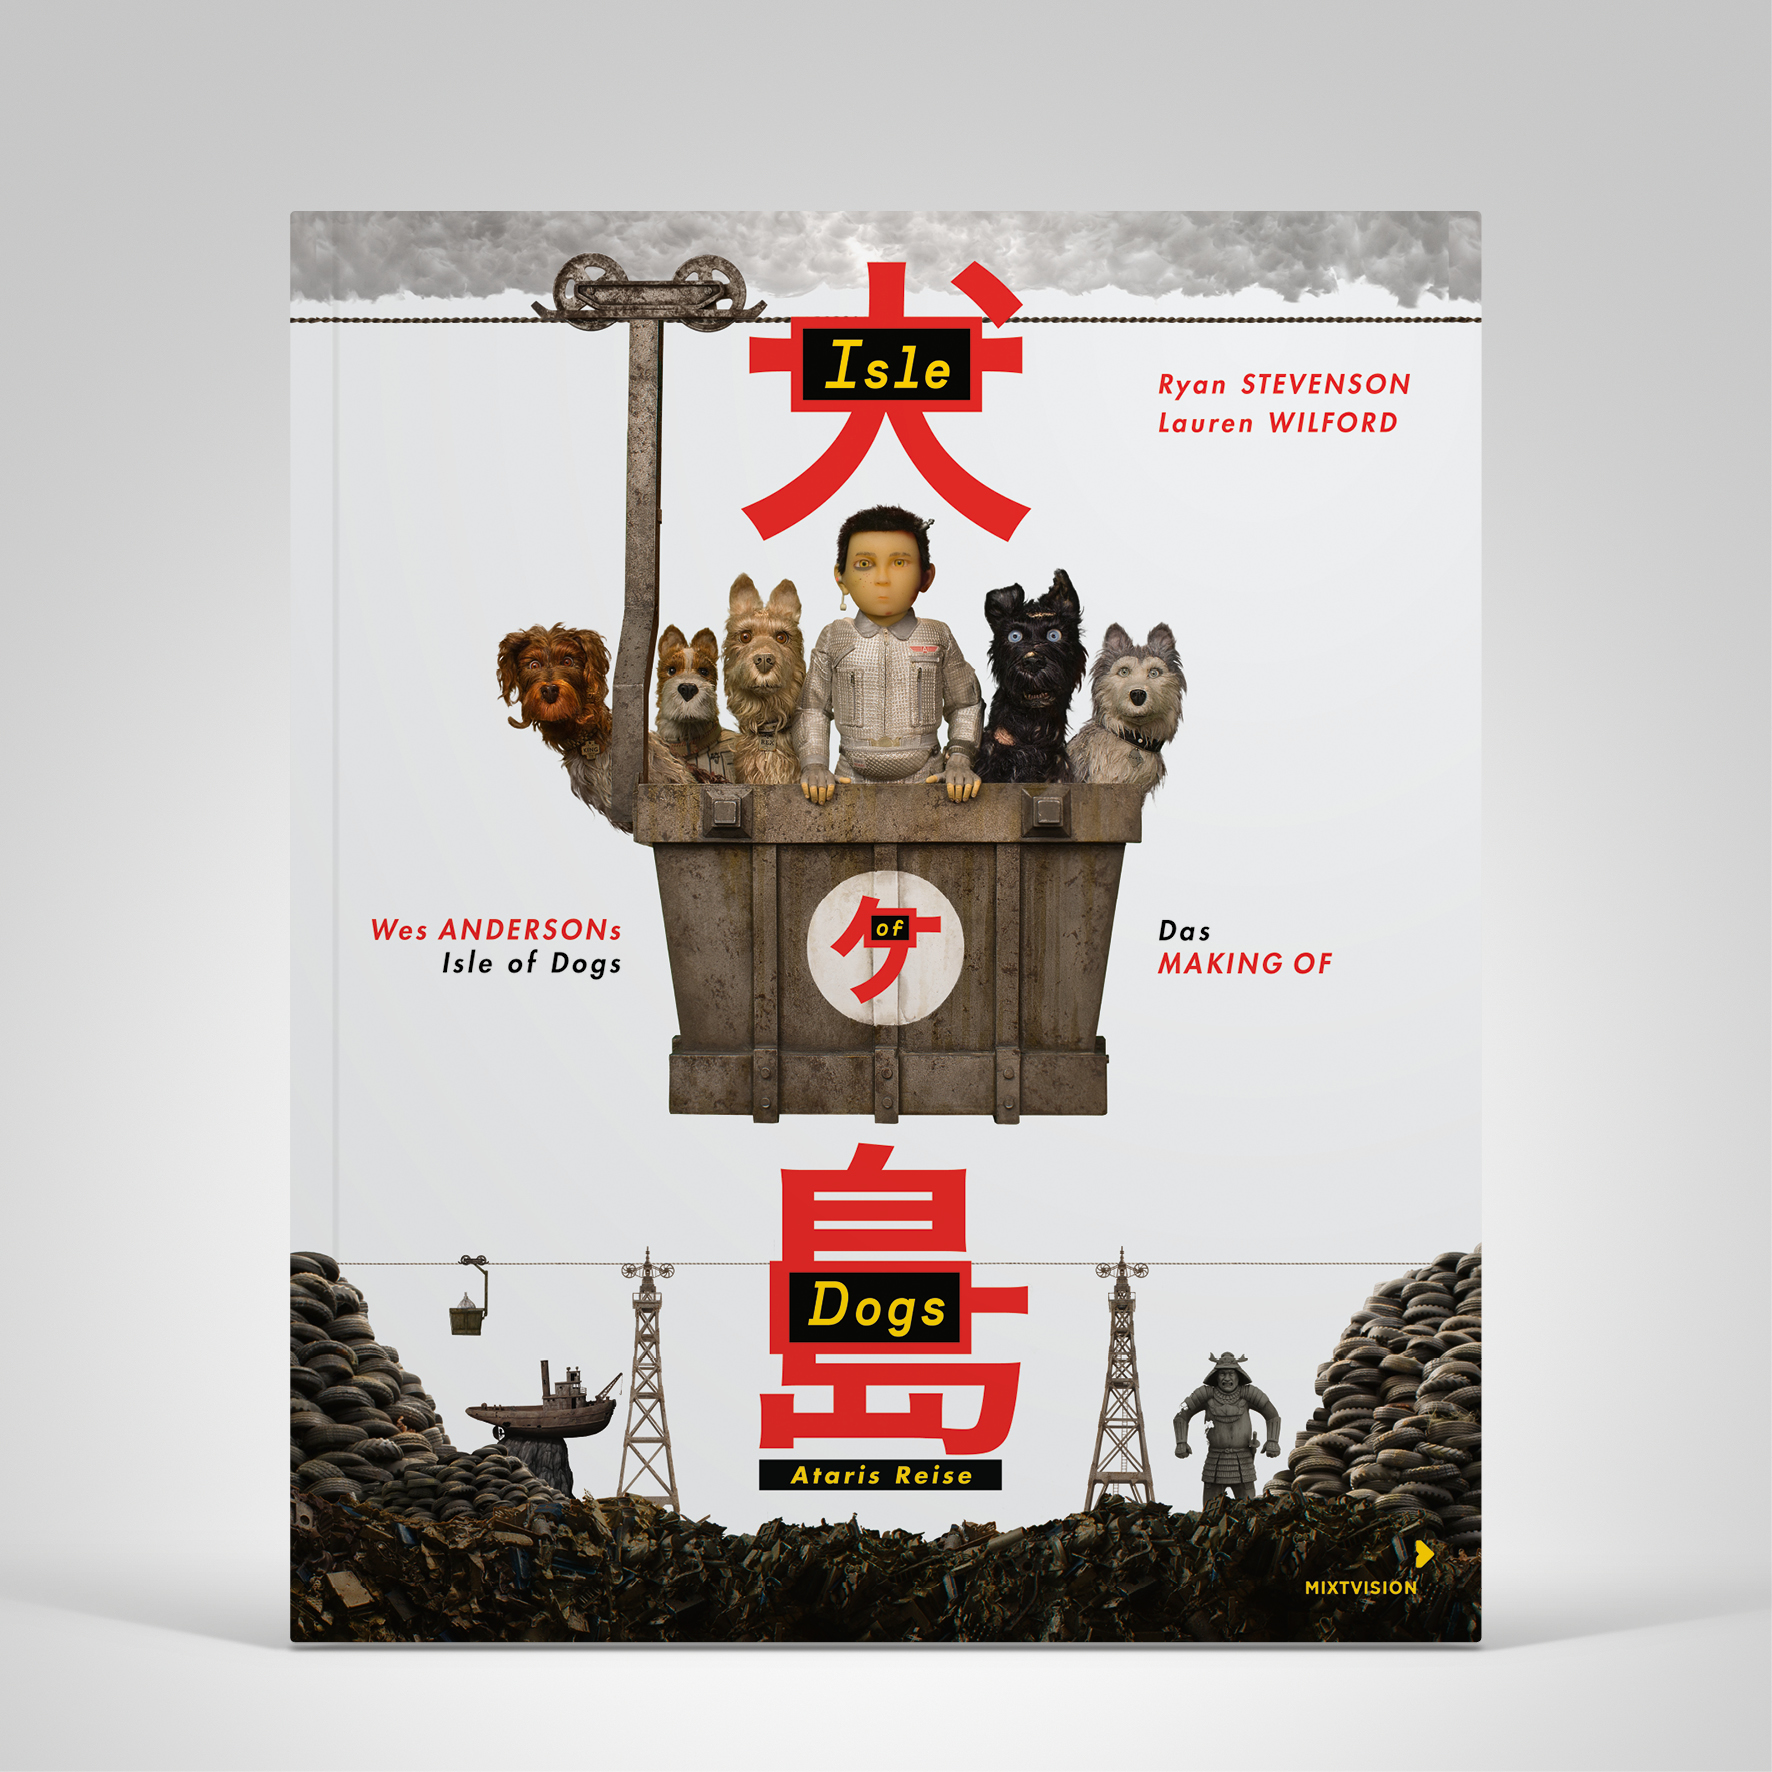 Wes Anderson. Isle of Dogs, Produktbild